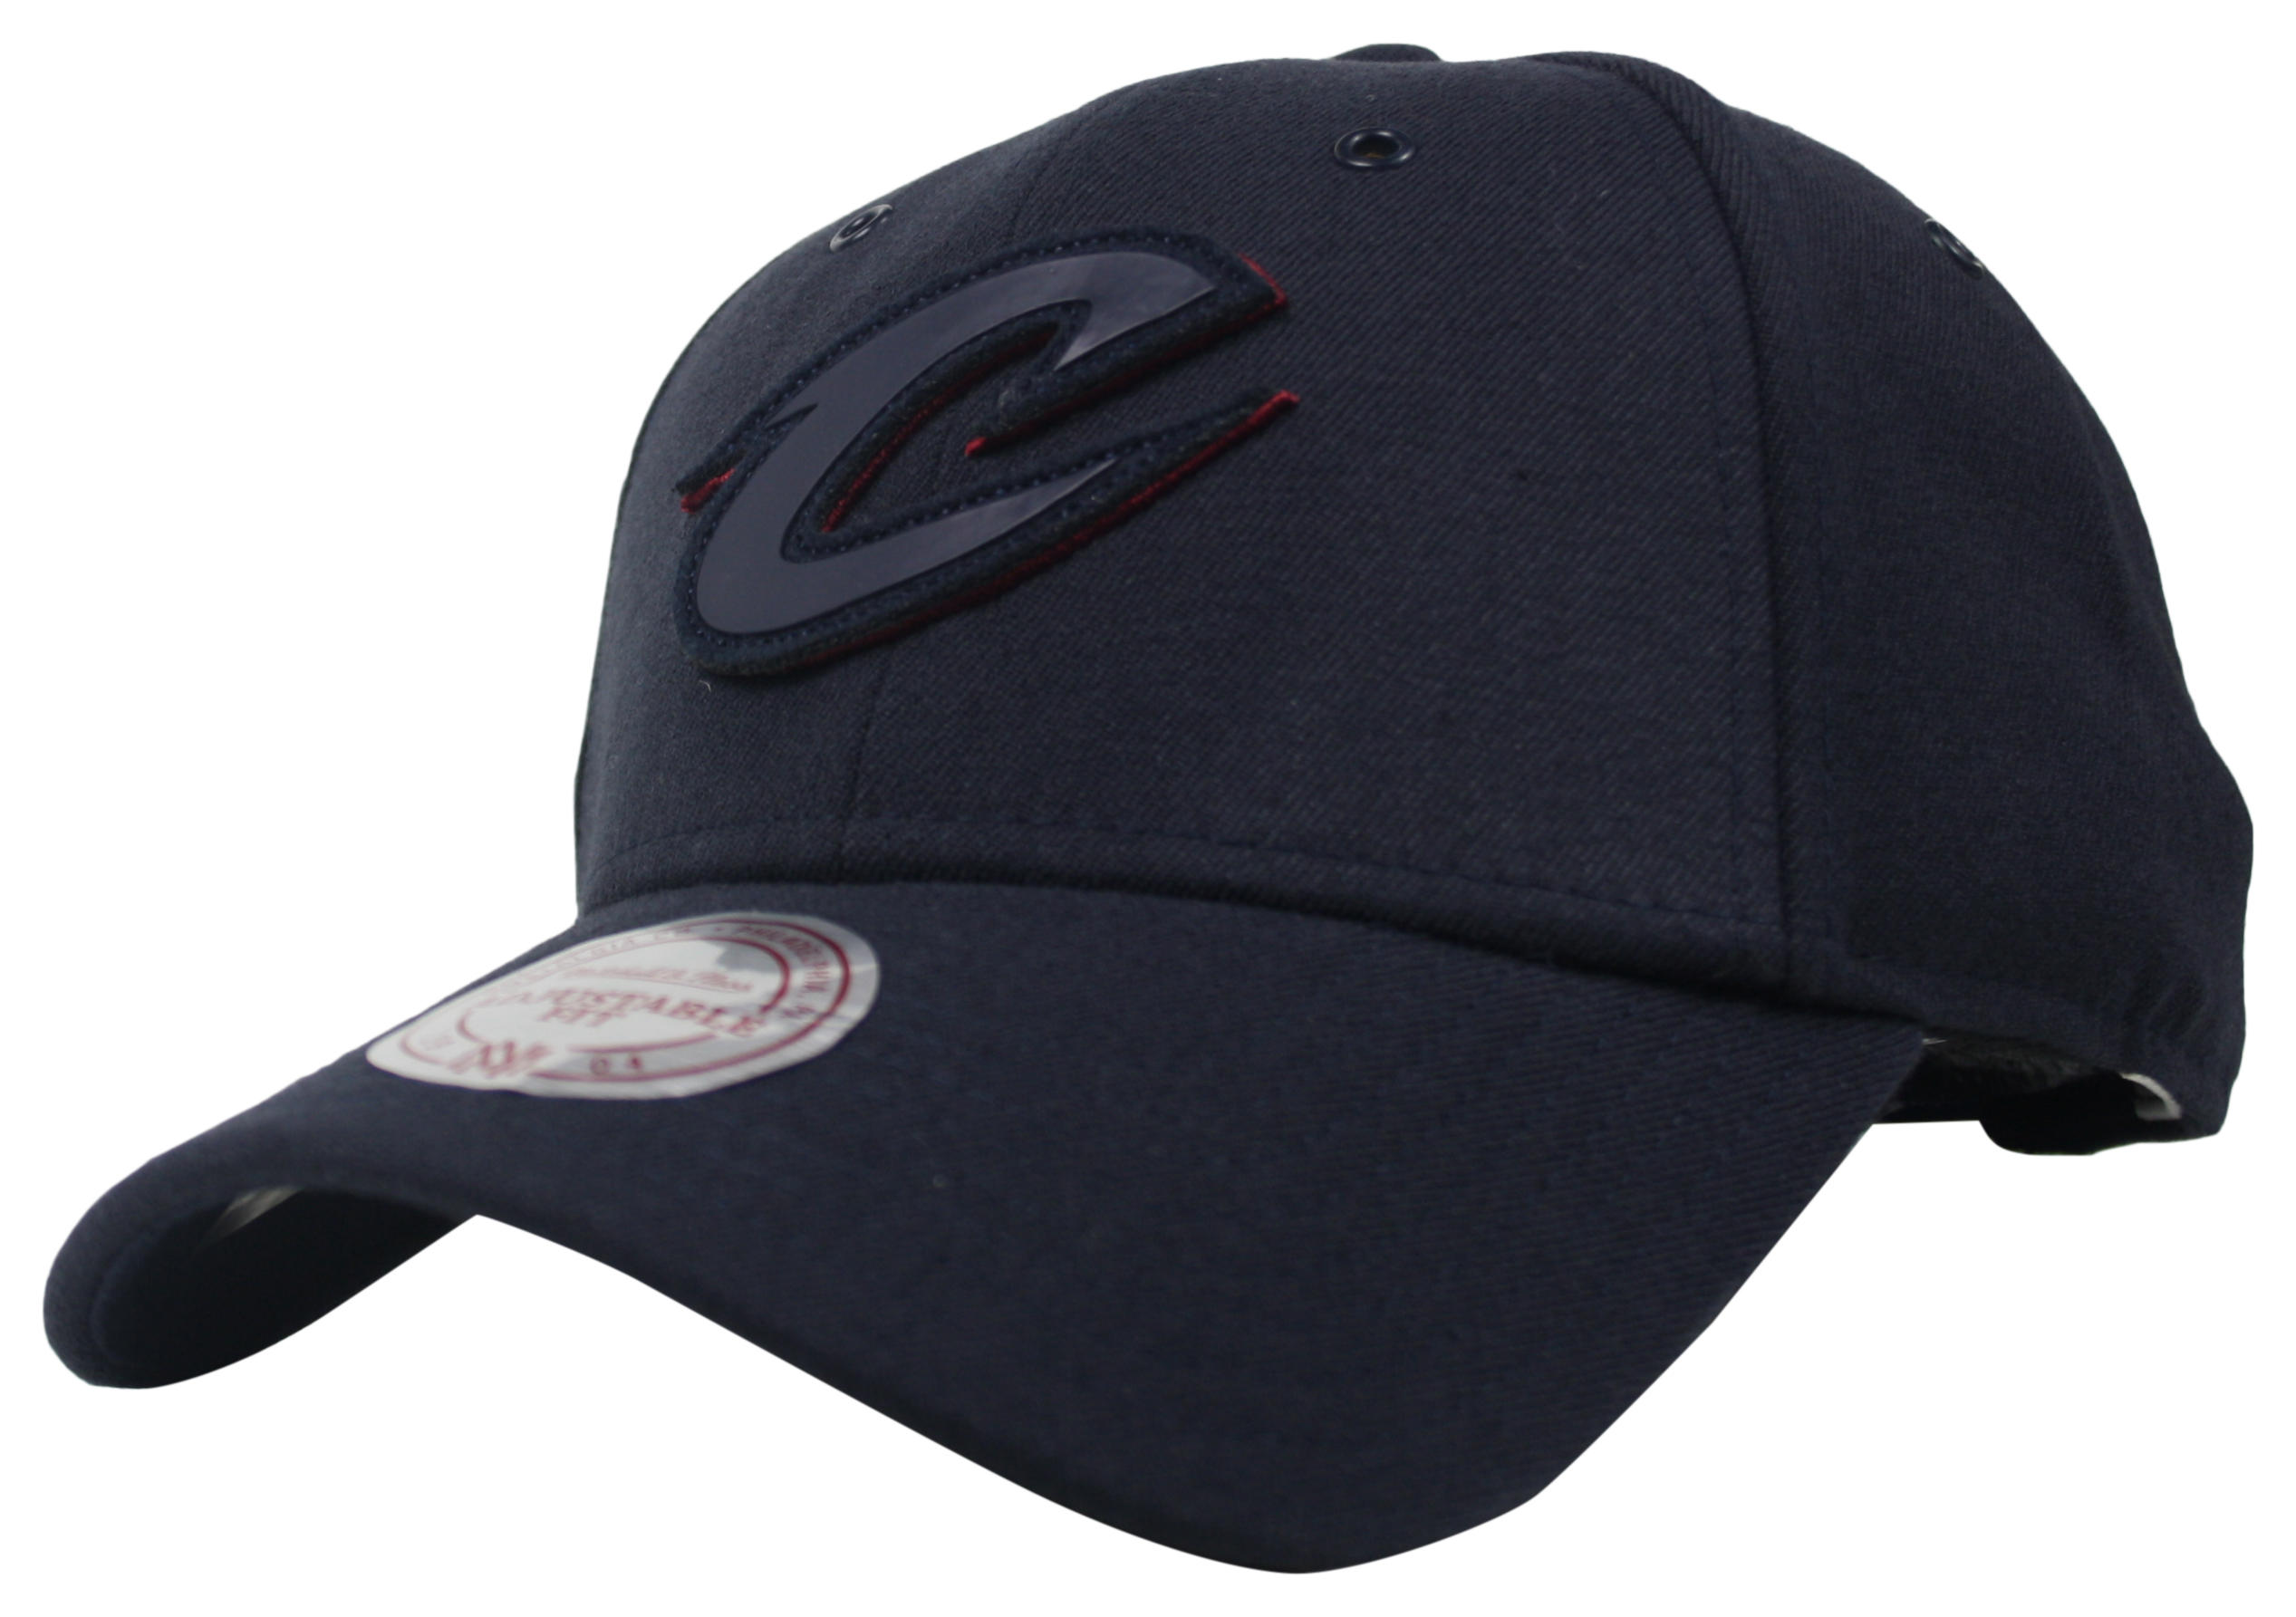 3470c65875a Filter 2.0 Snapback Cleveland Cavaliers